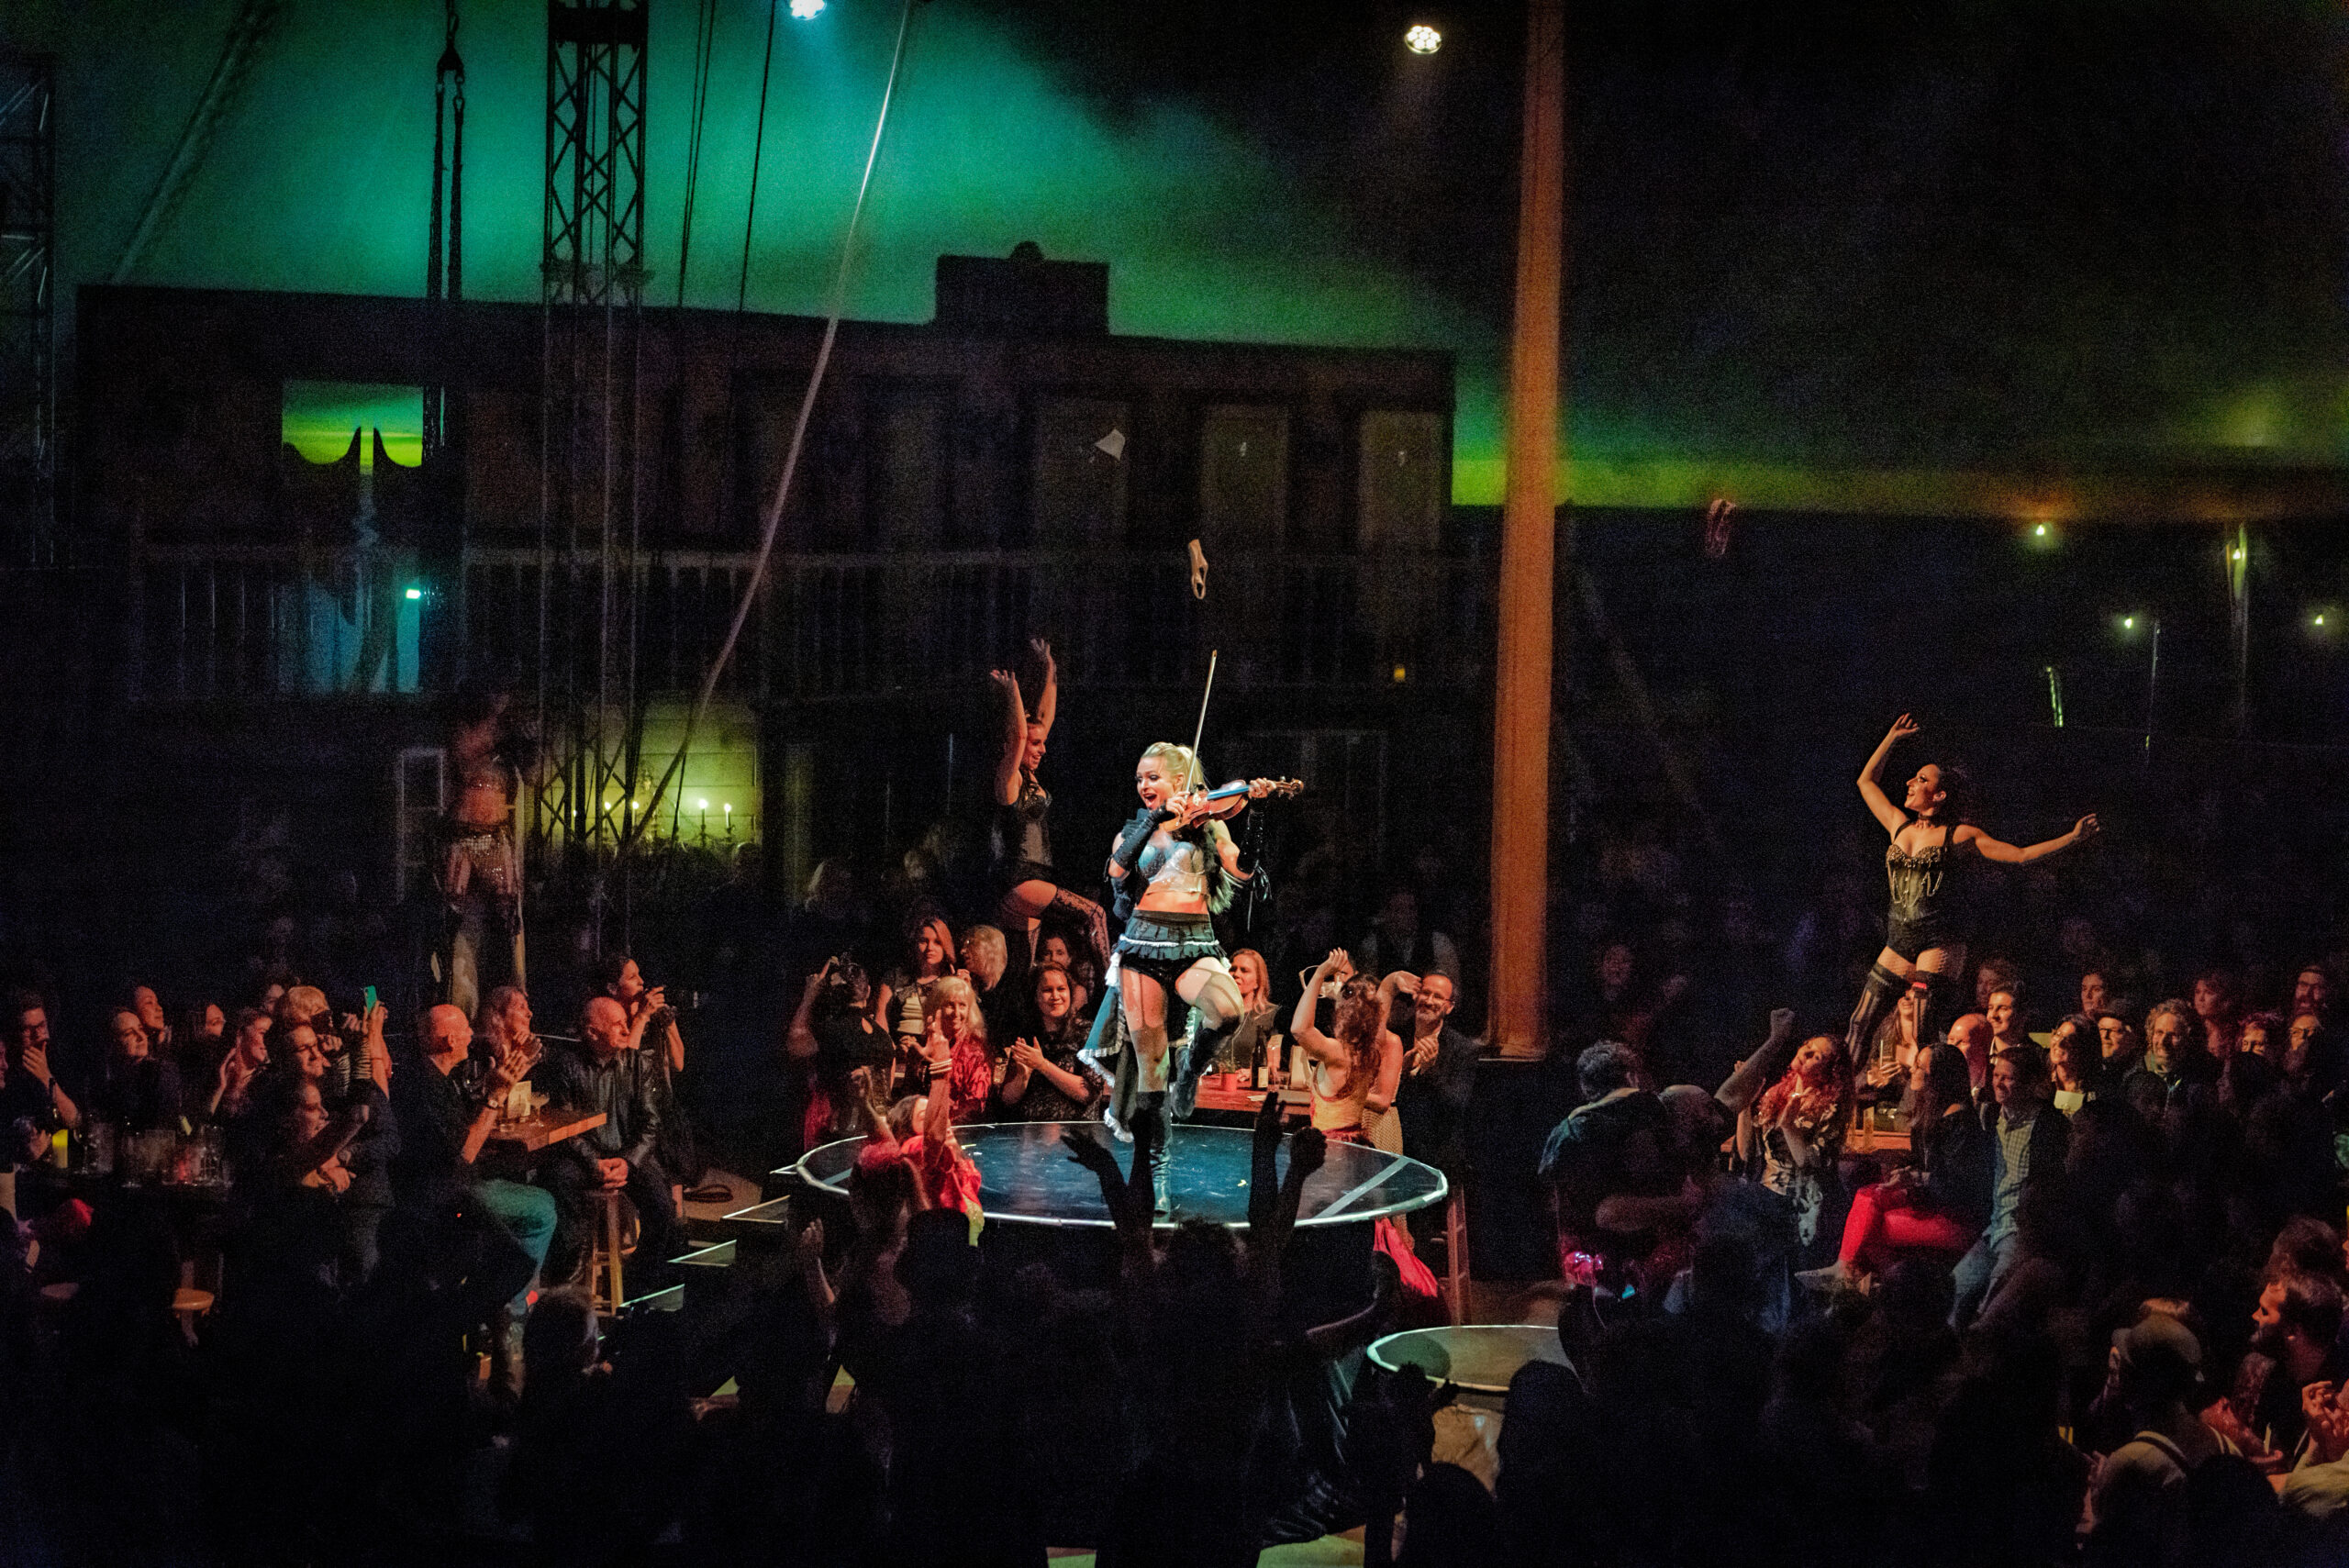 Image of Shaina Evoniuk and Vau de Vire Society performing at Vau de Vire's The Soiled Dove dinner theater Under the Tortona Big Top in Downtown Oakland